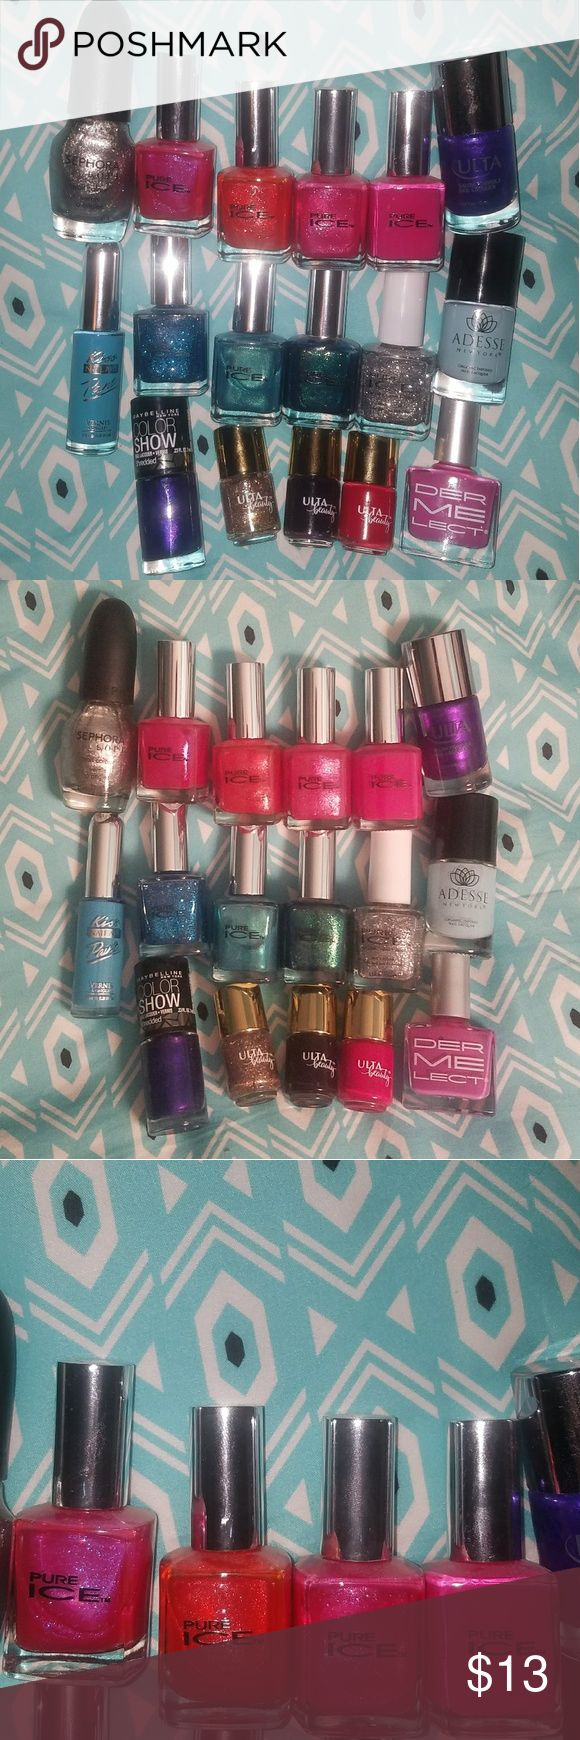 Nail Polish Bundle! Cleaning out my collection of nail polish and getting rid of a lot of colors that I seem to have multiples of lol!   Brands include: Pure Ice, Sephora, ULTA Beauty, Dermalect, Kiss, Maybelline, and Adesse Makeup